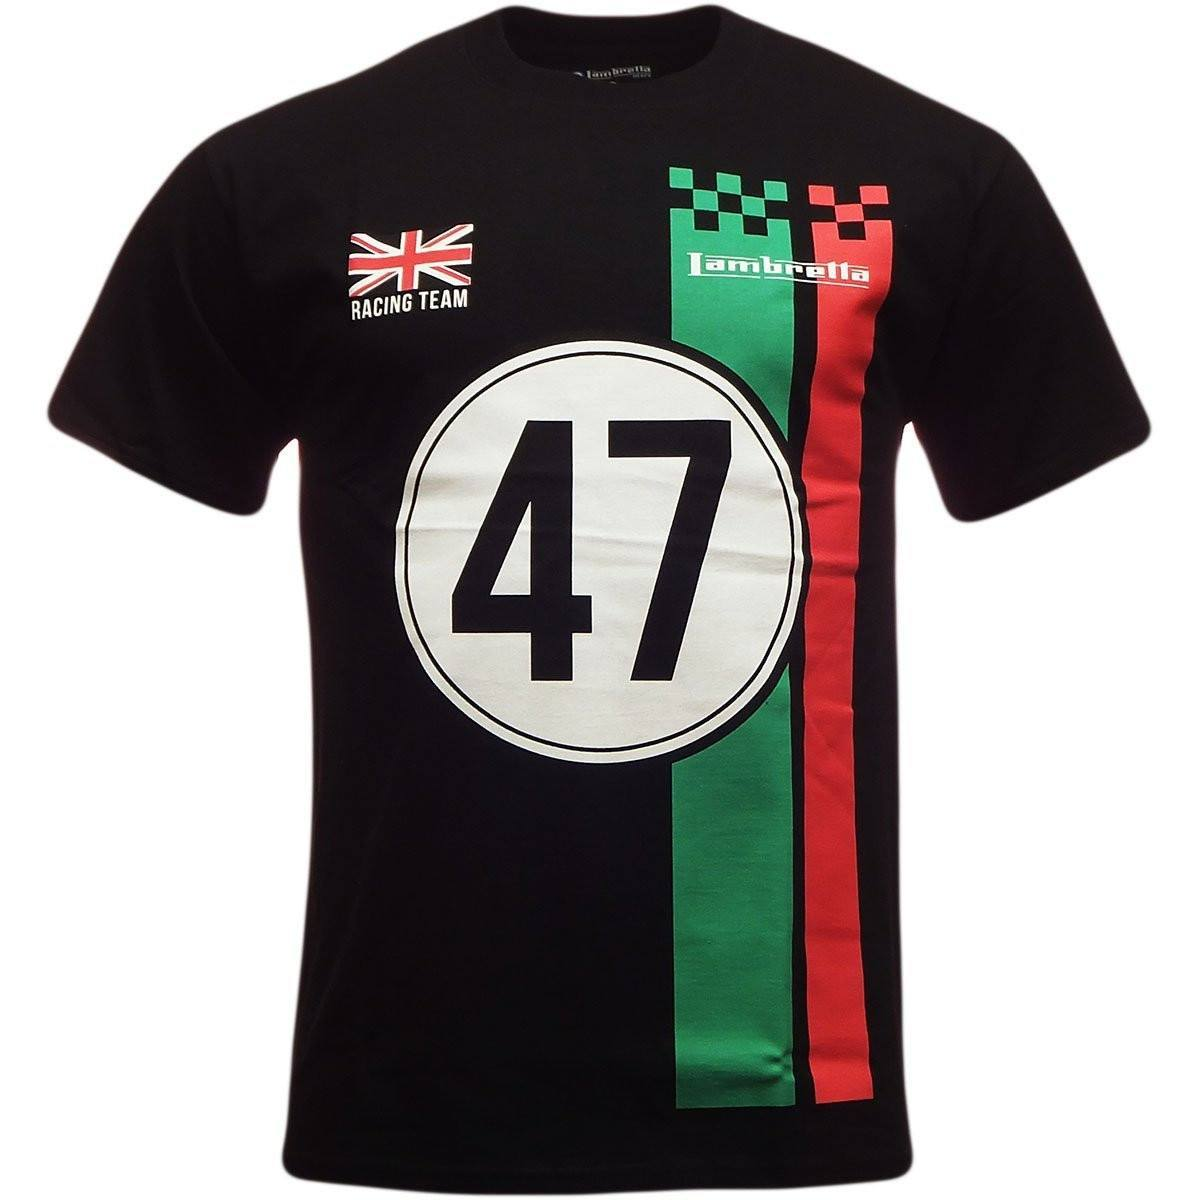 Lambretta Mens T Shirt 'Racing Team' Design - Black - Ninostyle